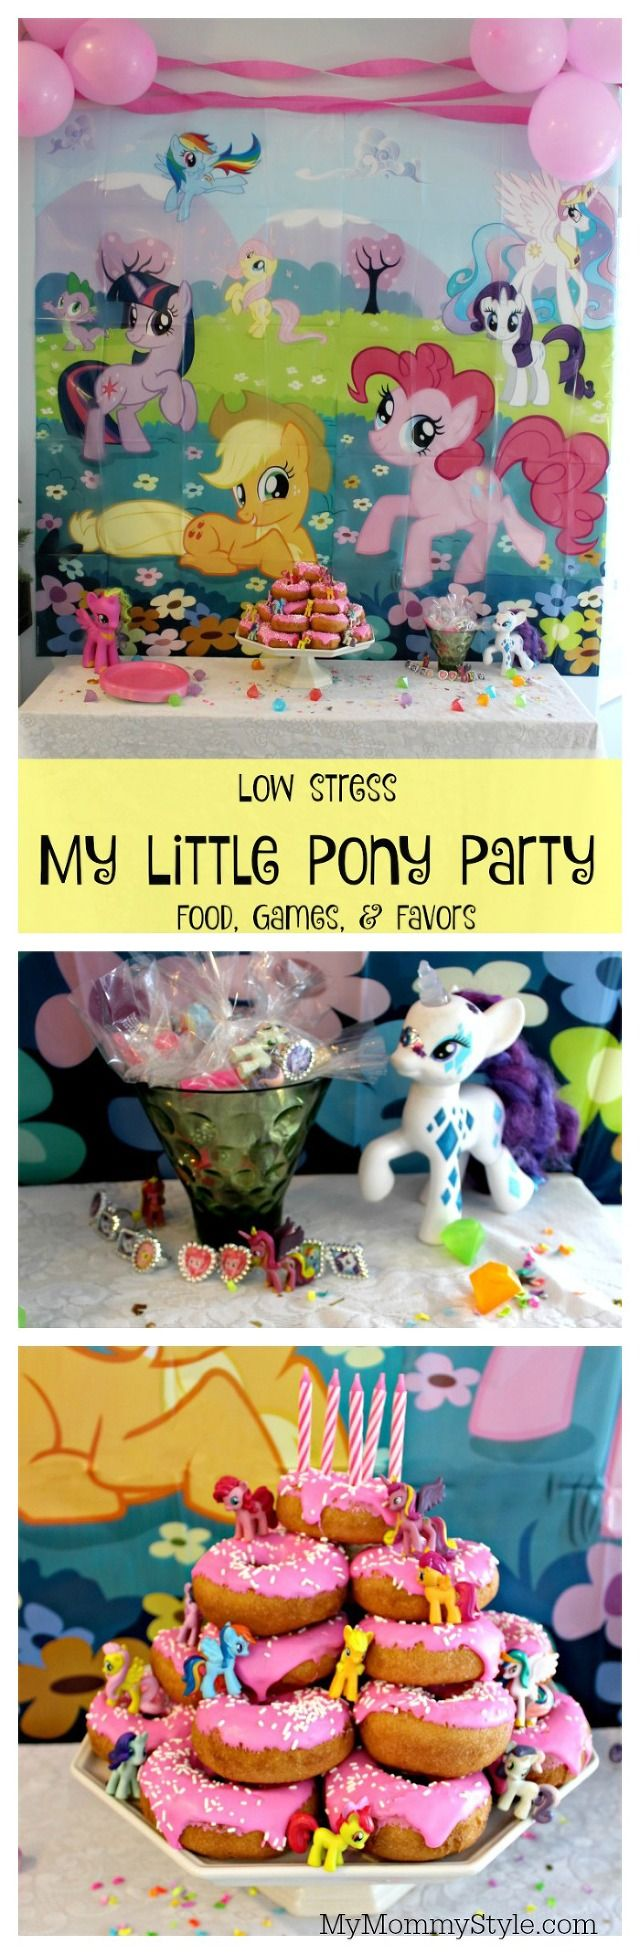 Pin cara menghias kue cake decorating cake on pinterest - Super Fun And Easy My Little Pony Cake And All Of The Things You See Can